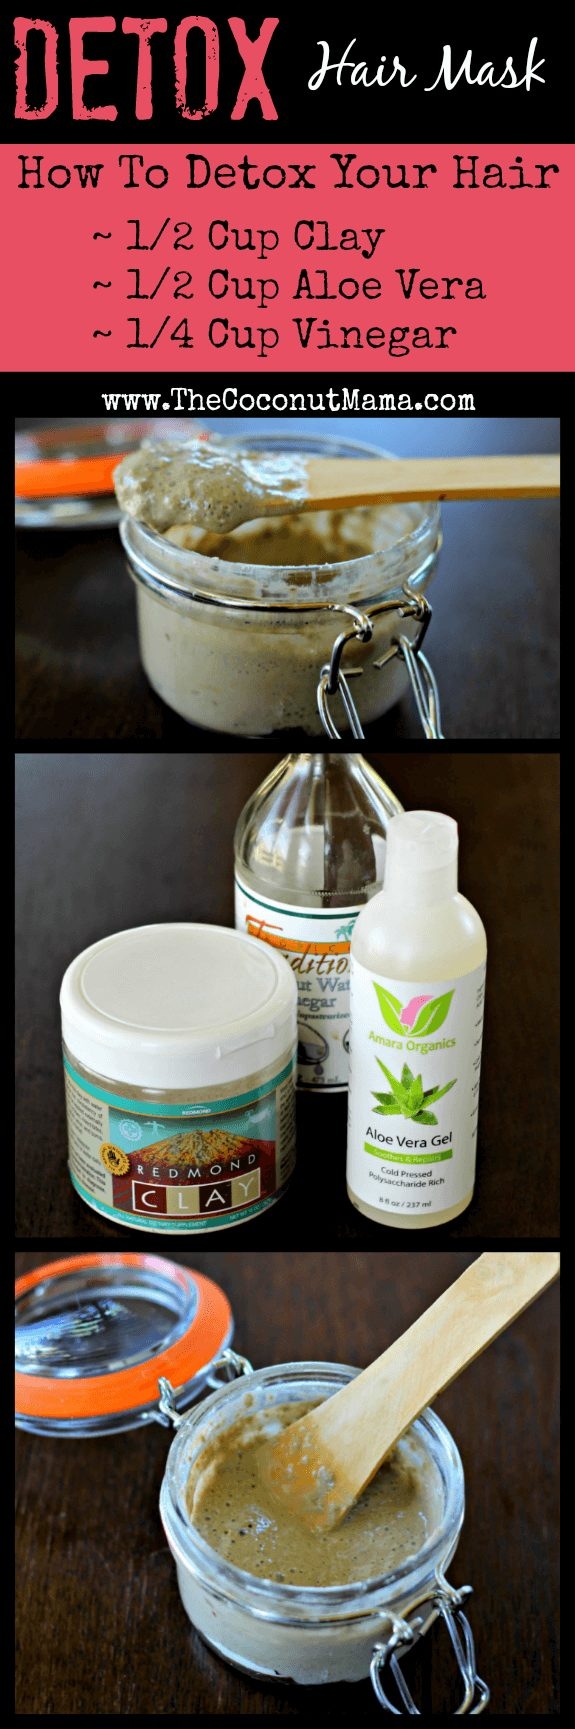 How to Detox Your Hair from The Coconut Mama